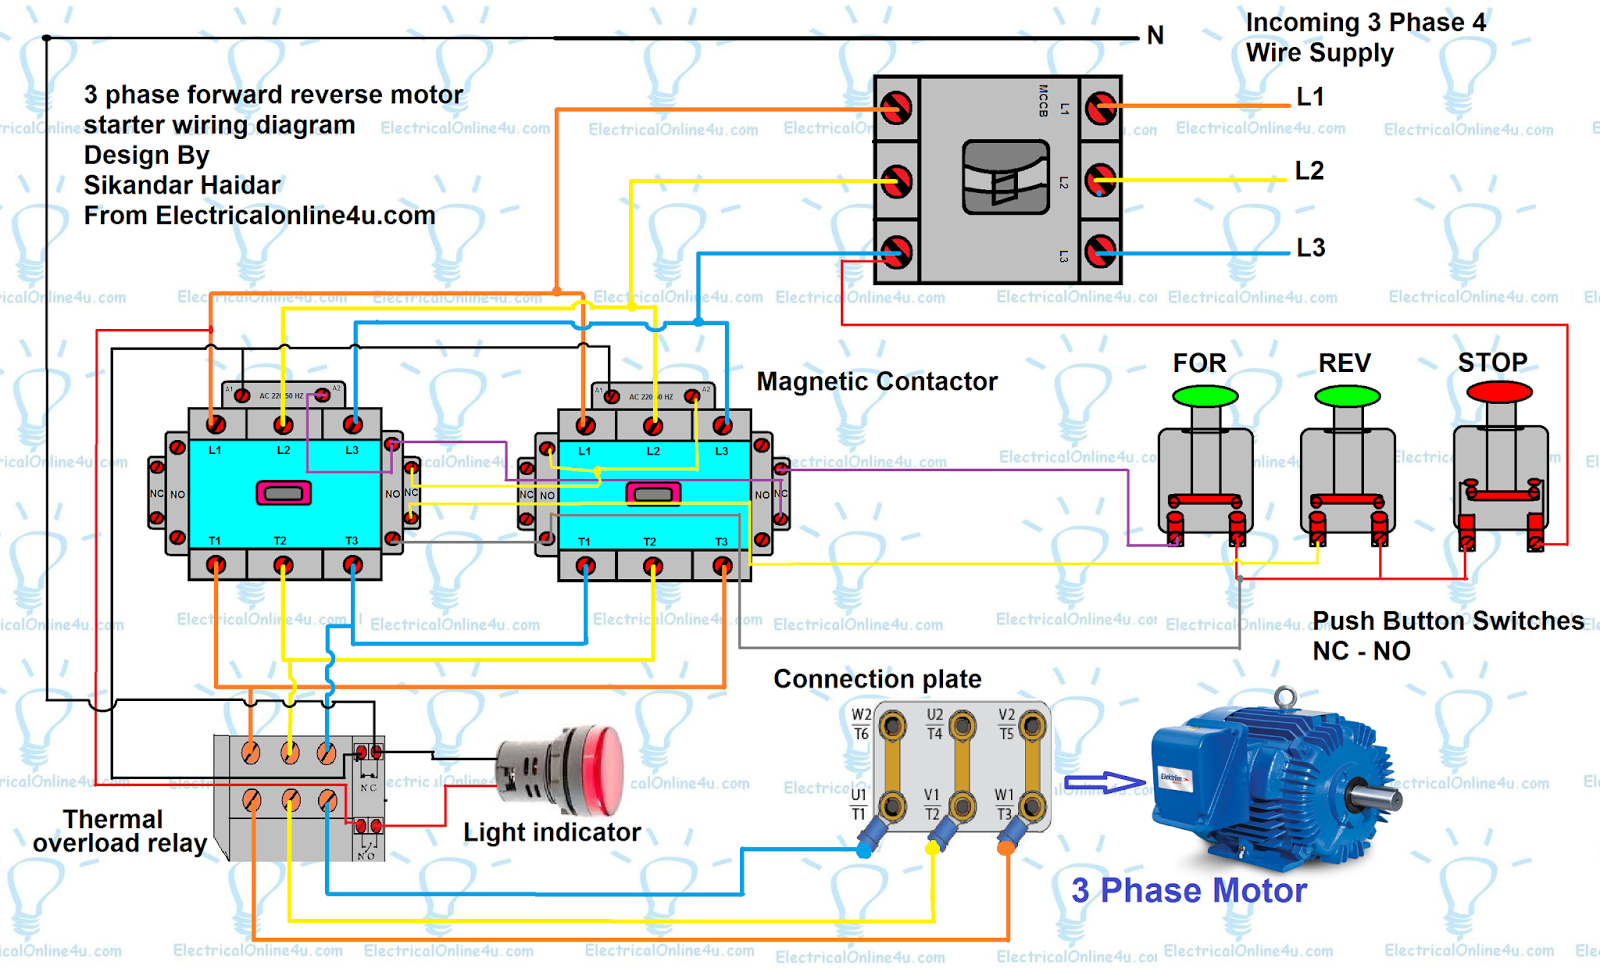 electrical online 4u railex wiring diagrams single phase motor forward and reverse